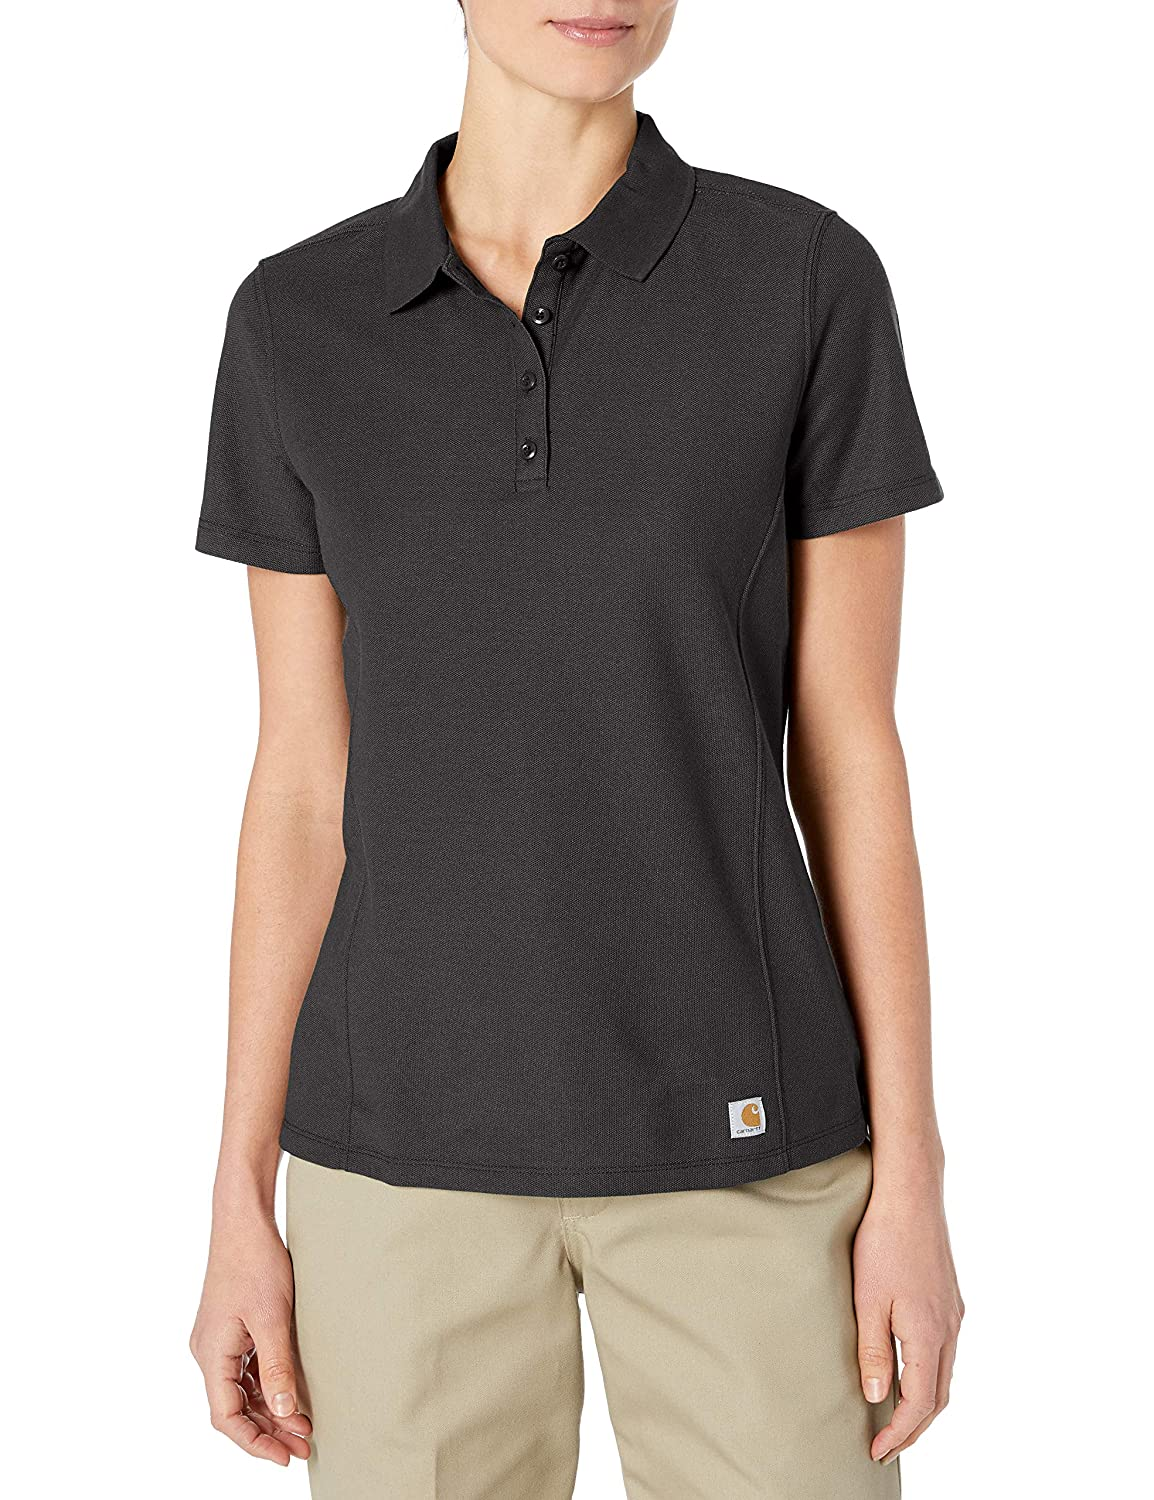 Carhartt Mujer - Manga Corta Playera - Negro - Medium: Amazon.es ...